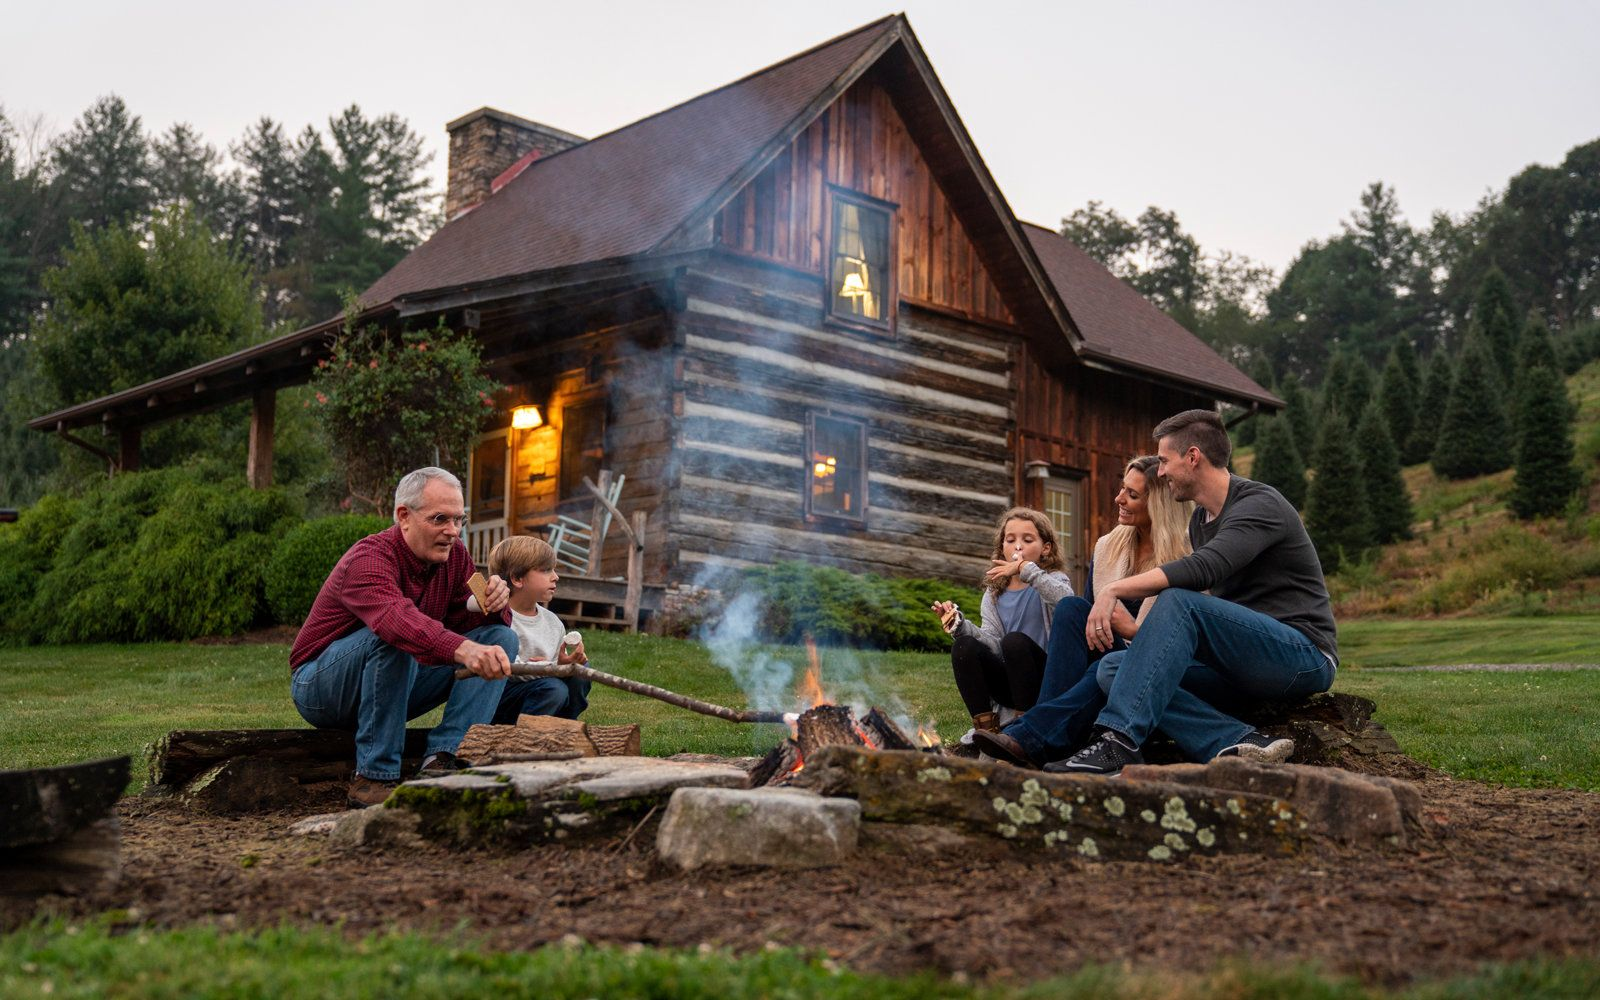 Relaxation Awaits At This 150 Year Old Antique Cabin In North Carolina North Carolina Cabins North Carolina Beaches Smoky Mountains Vacation